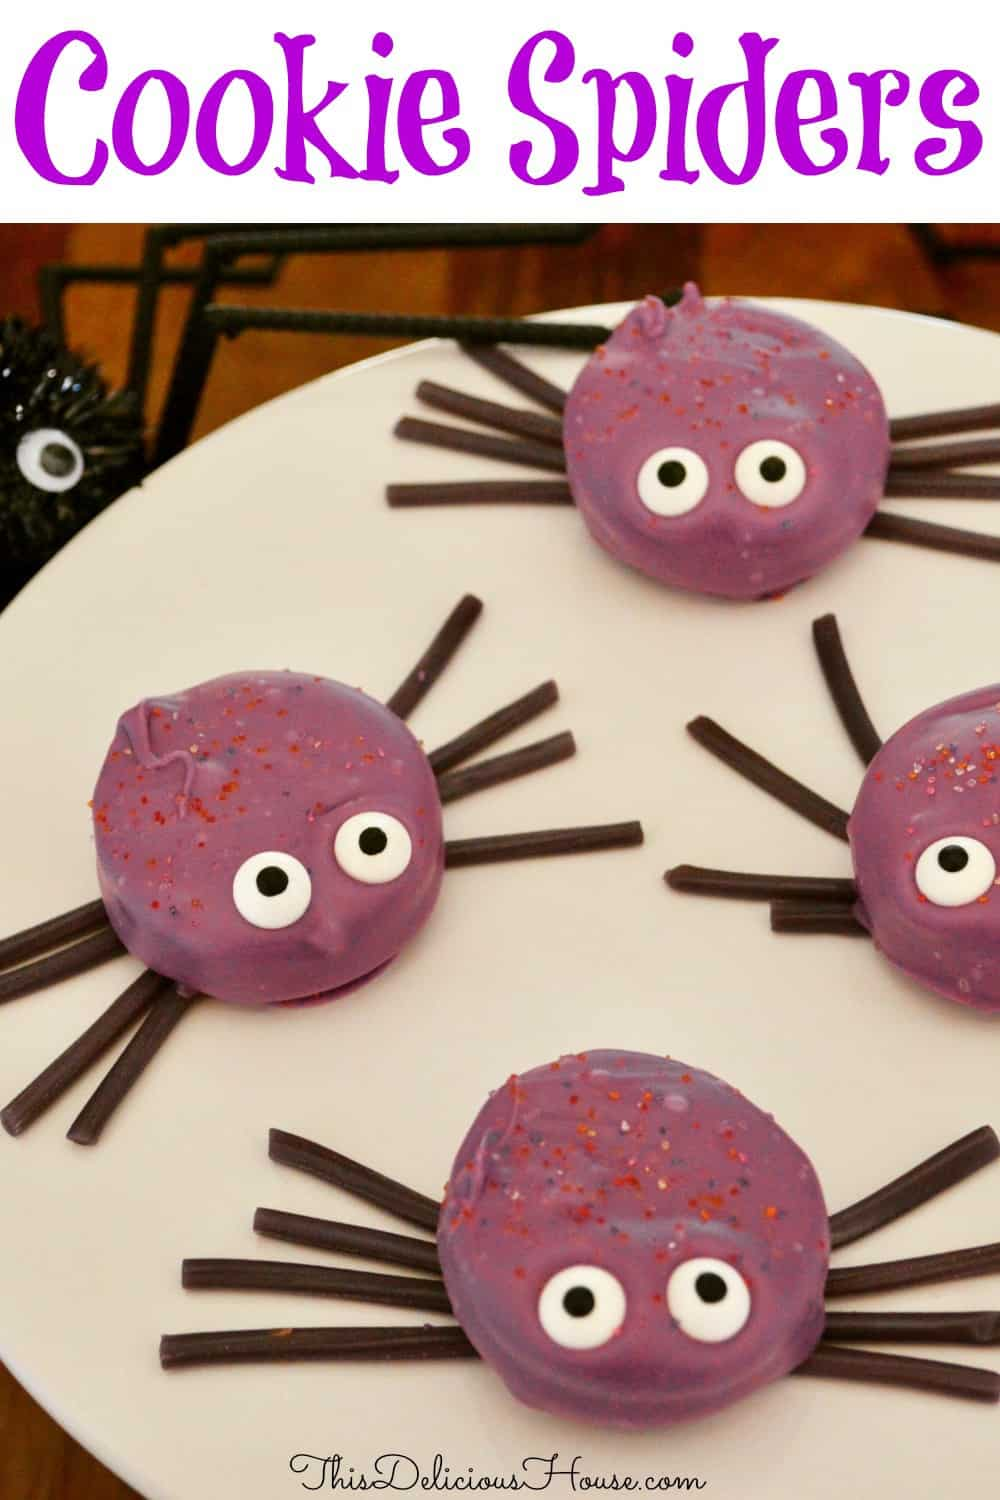 oreo cookie spiders pinterest pin.